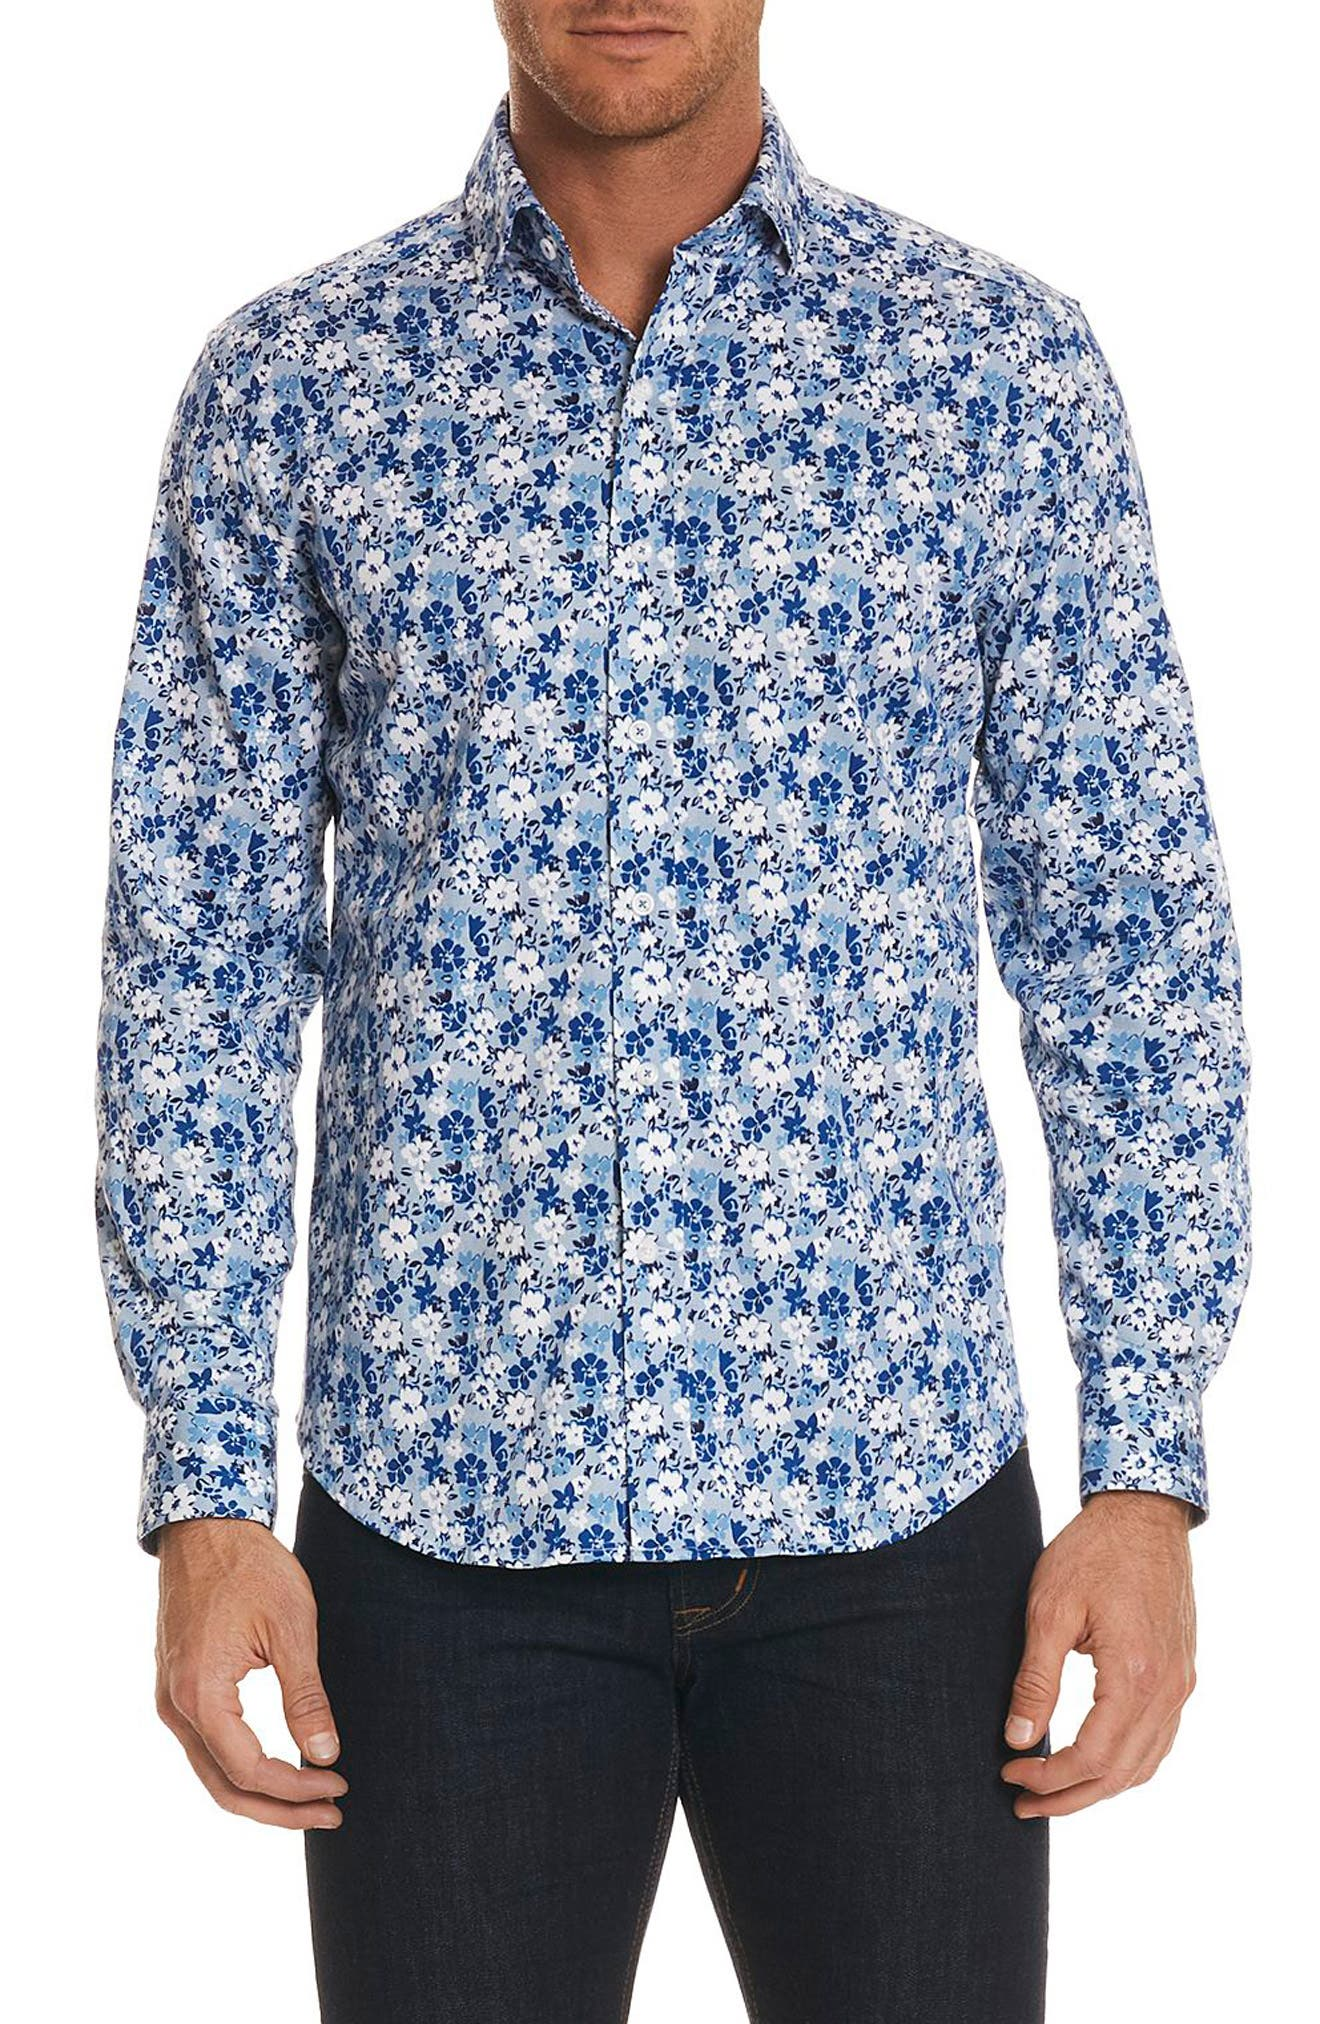 Asher Tailored Fit Floral Sport Shirt,                         Main,                         color, Blue